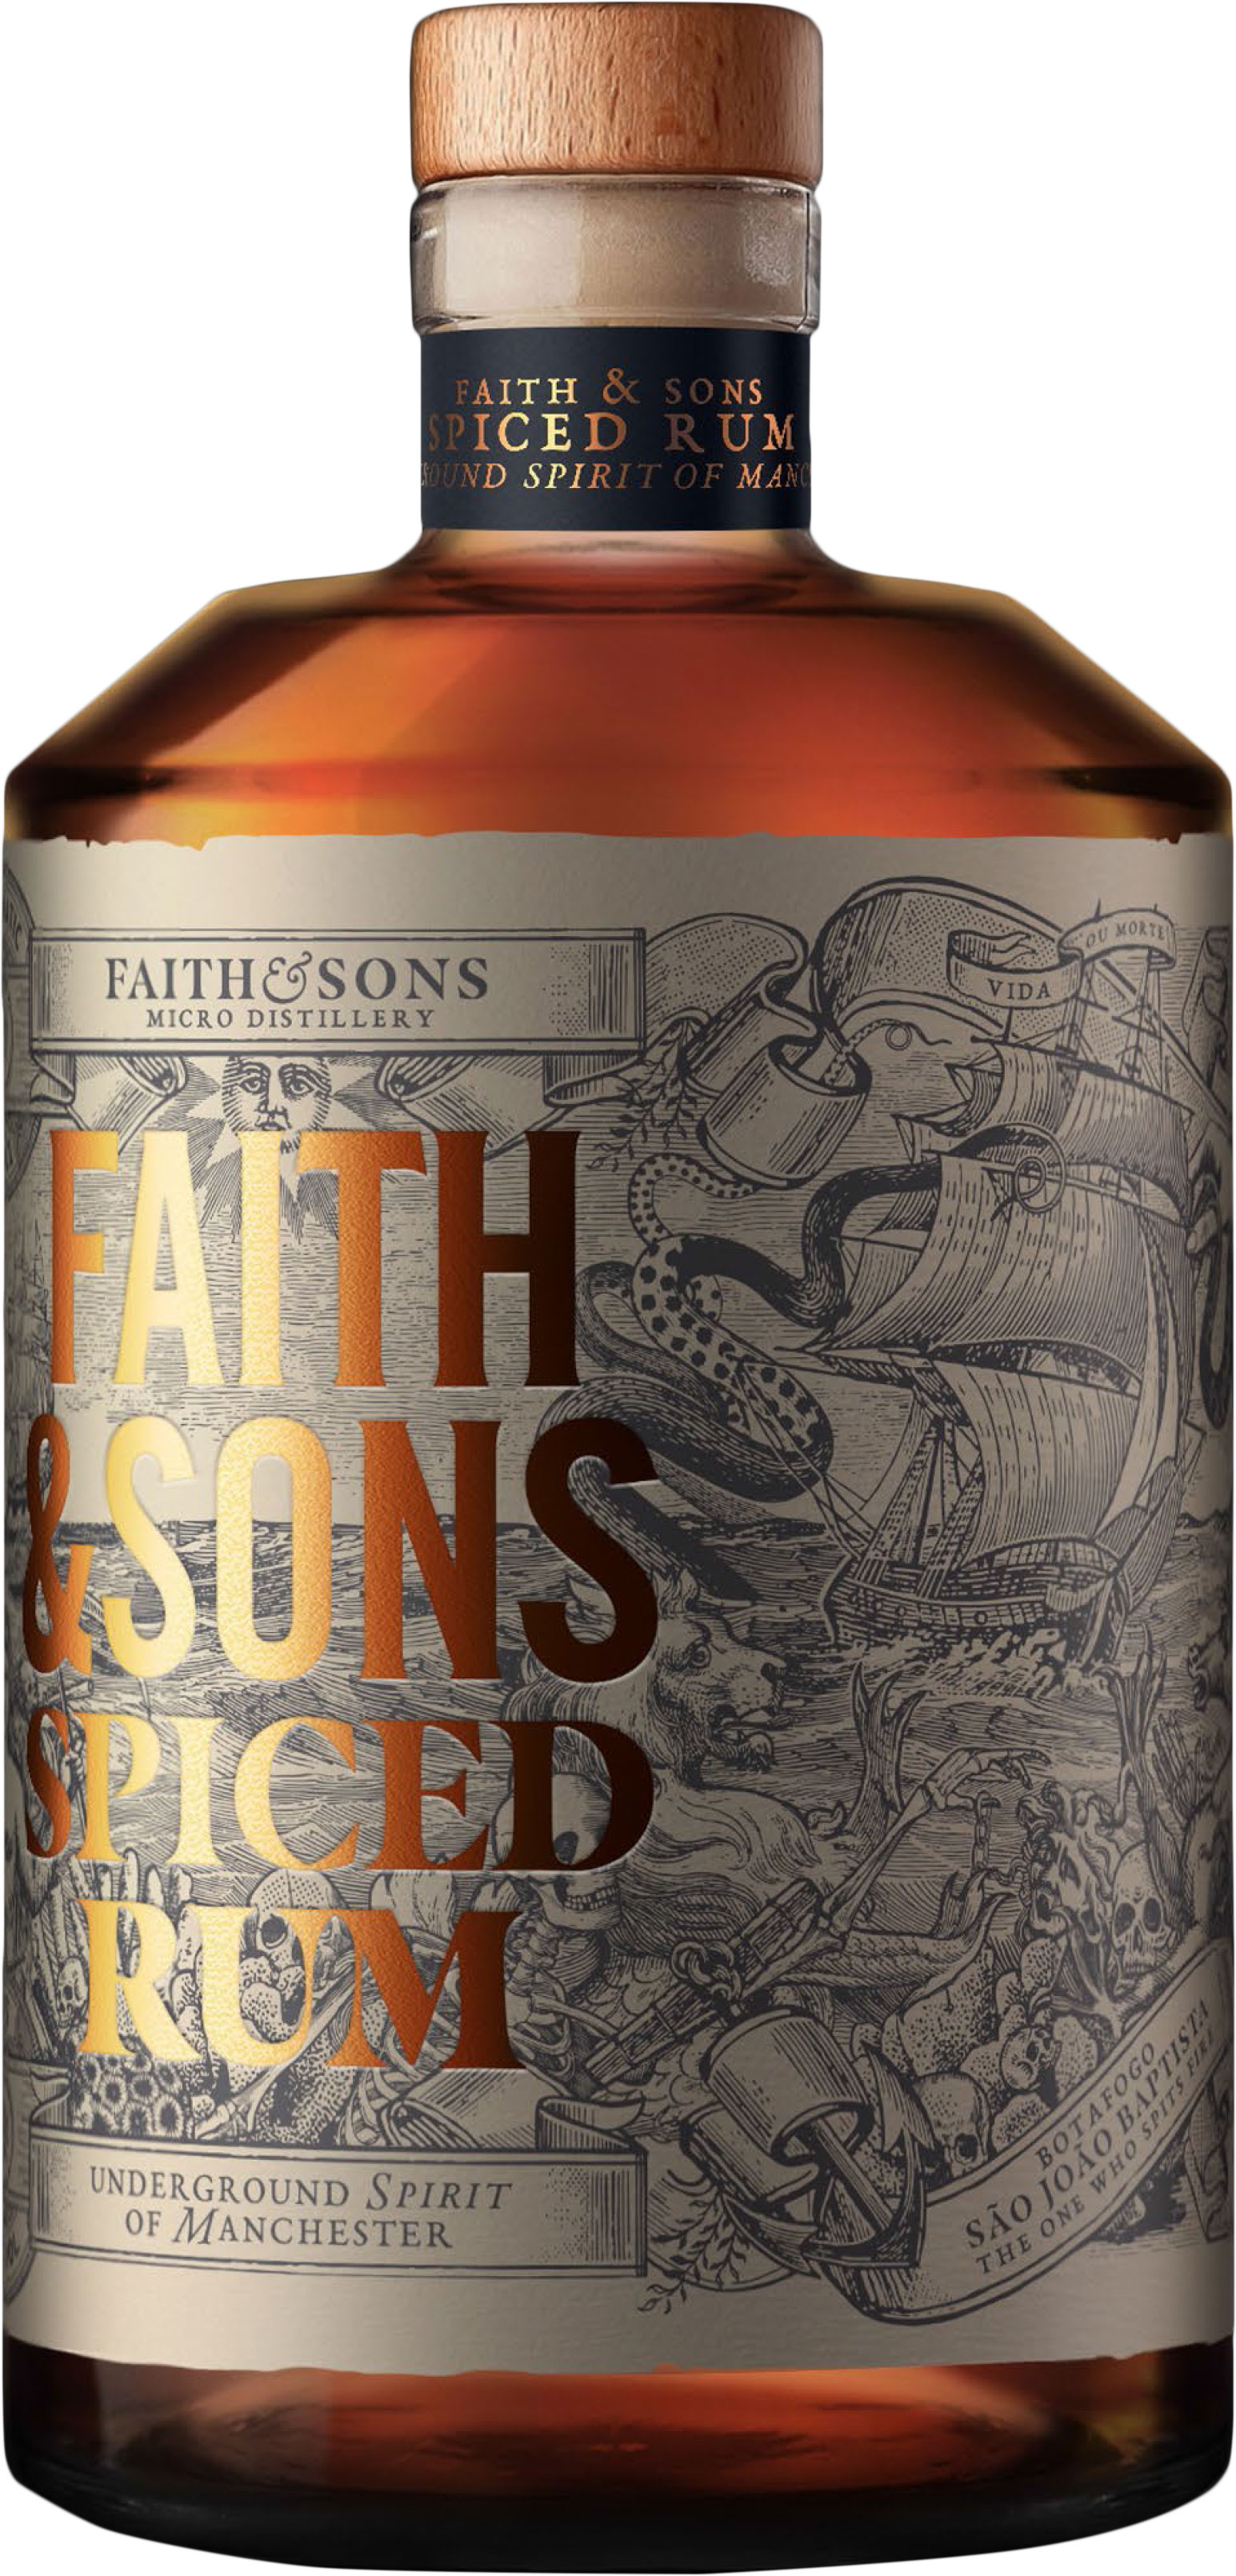 Faith & Sons - Spiced Rum 50cl Bottle